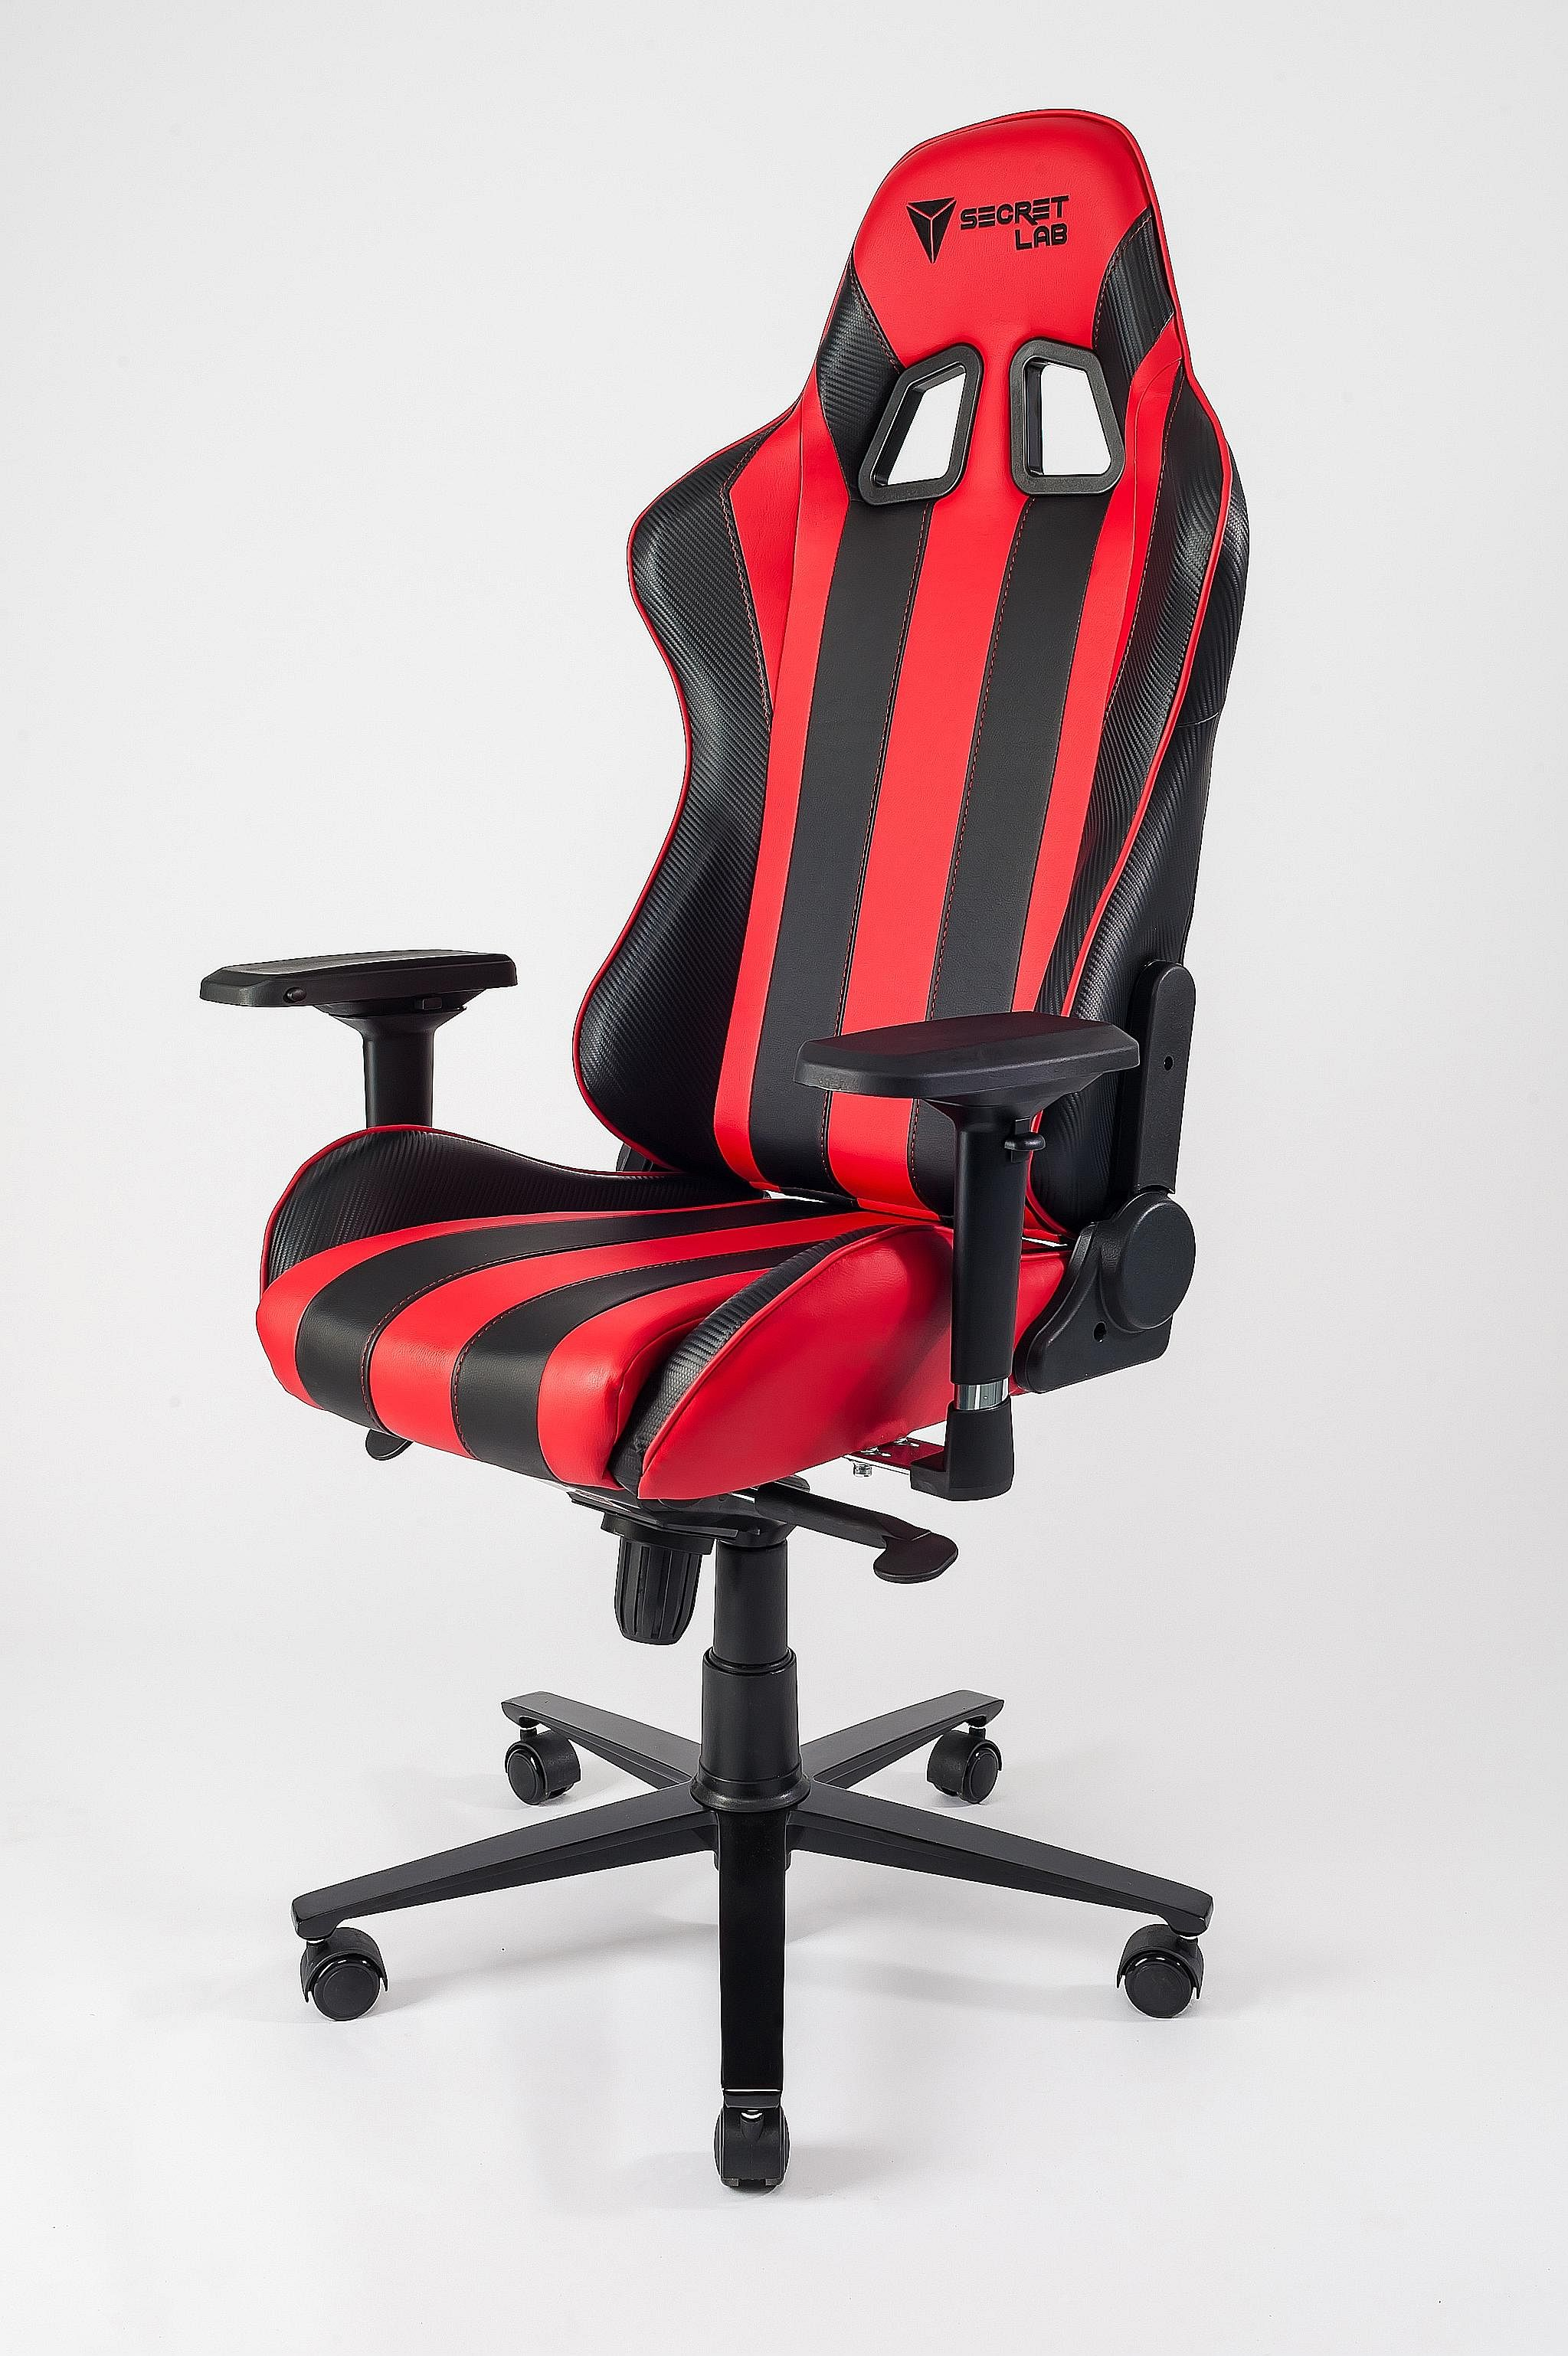 The Throne V2 (left) and the Omega are sequels to the highly popular Throne V1. They feature an aluminium wheelbase and armrests that can be adjusted on four axes.